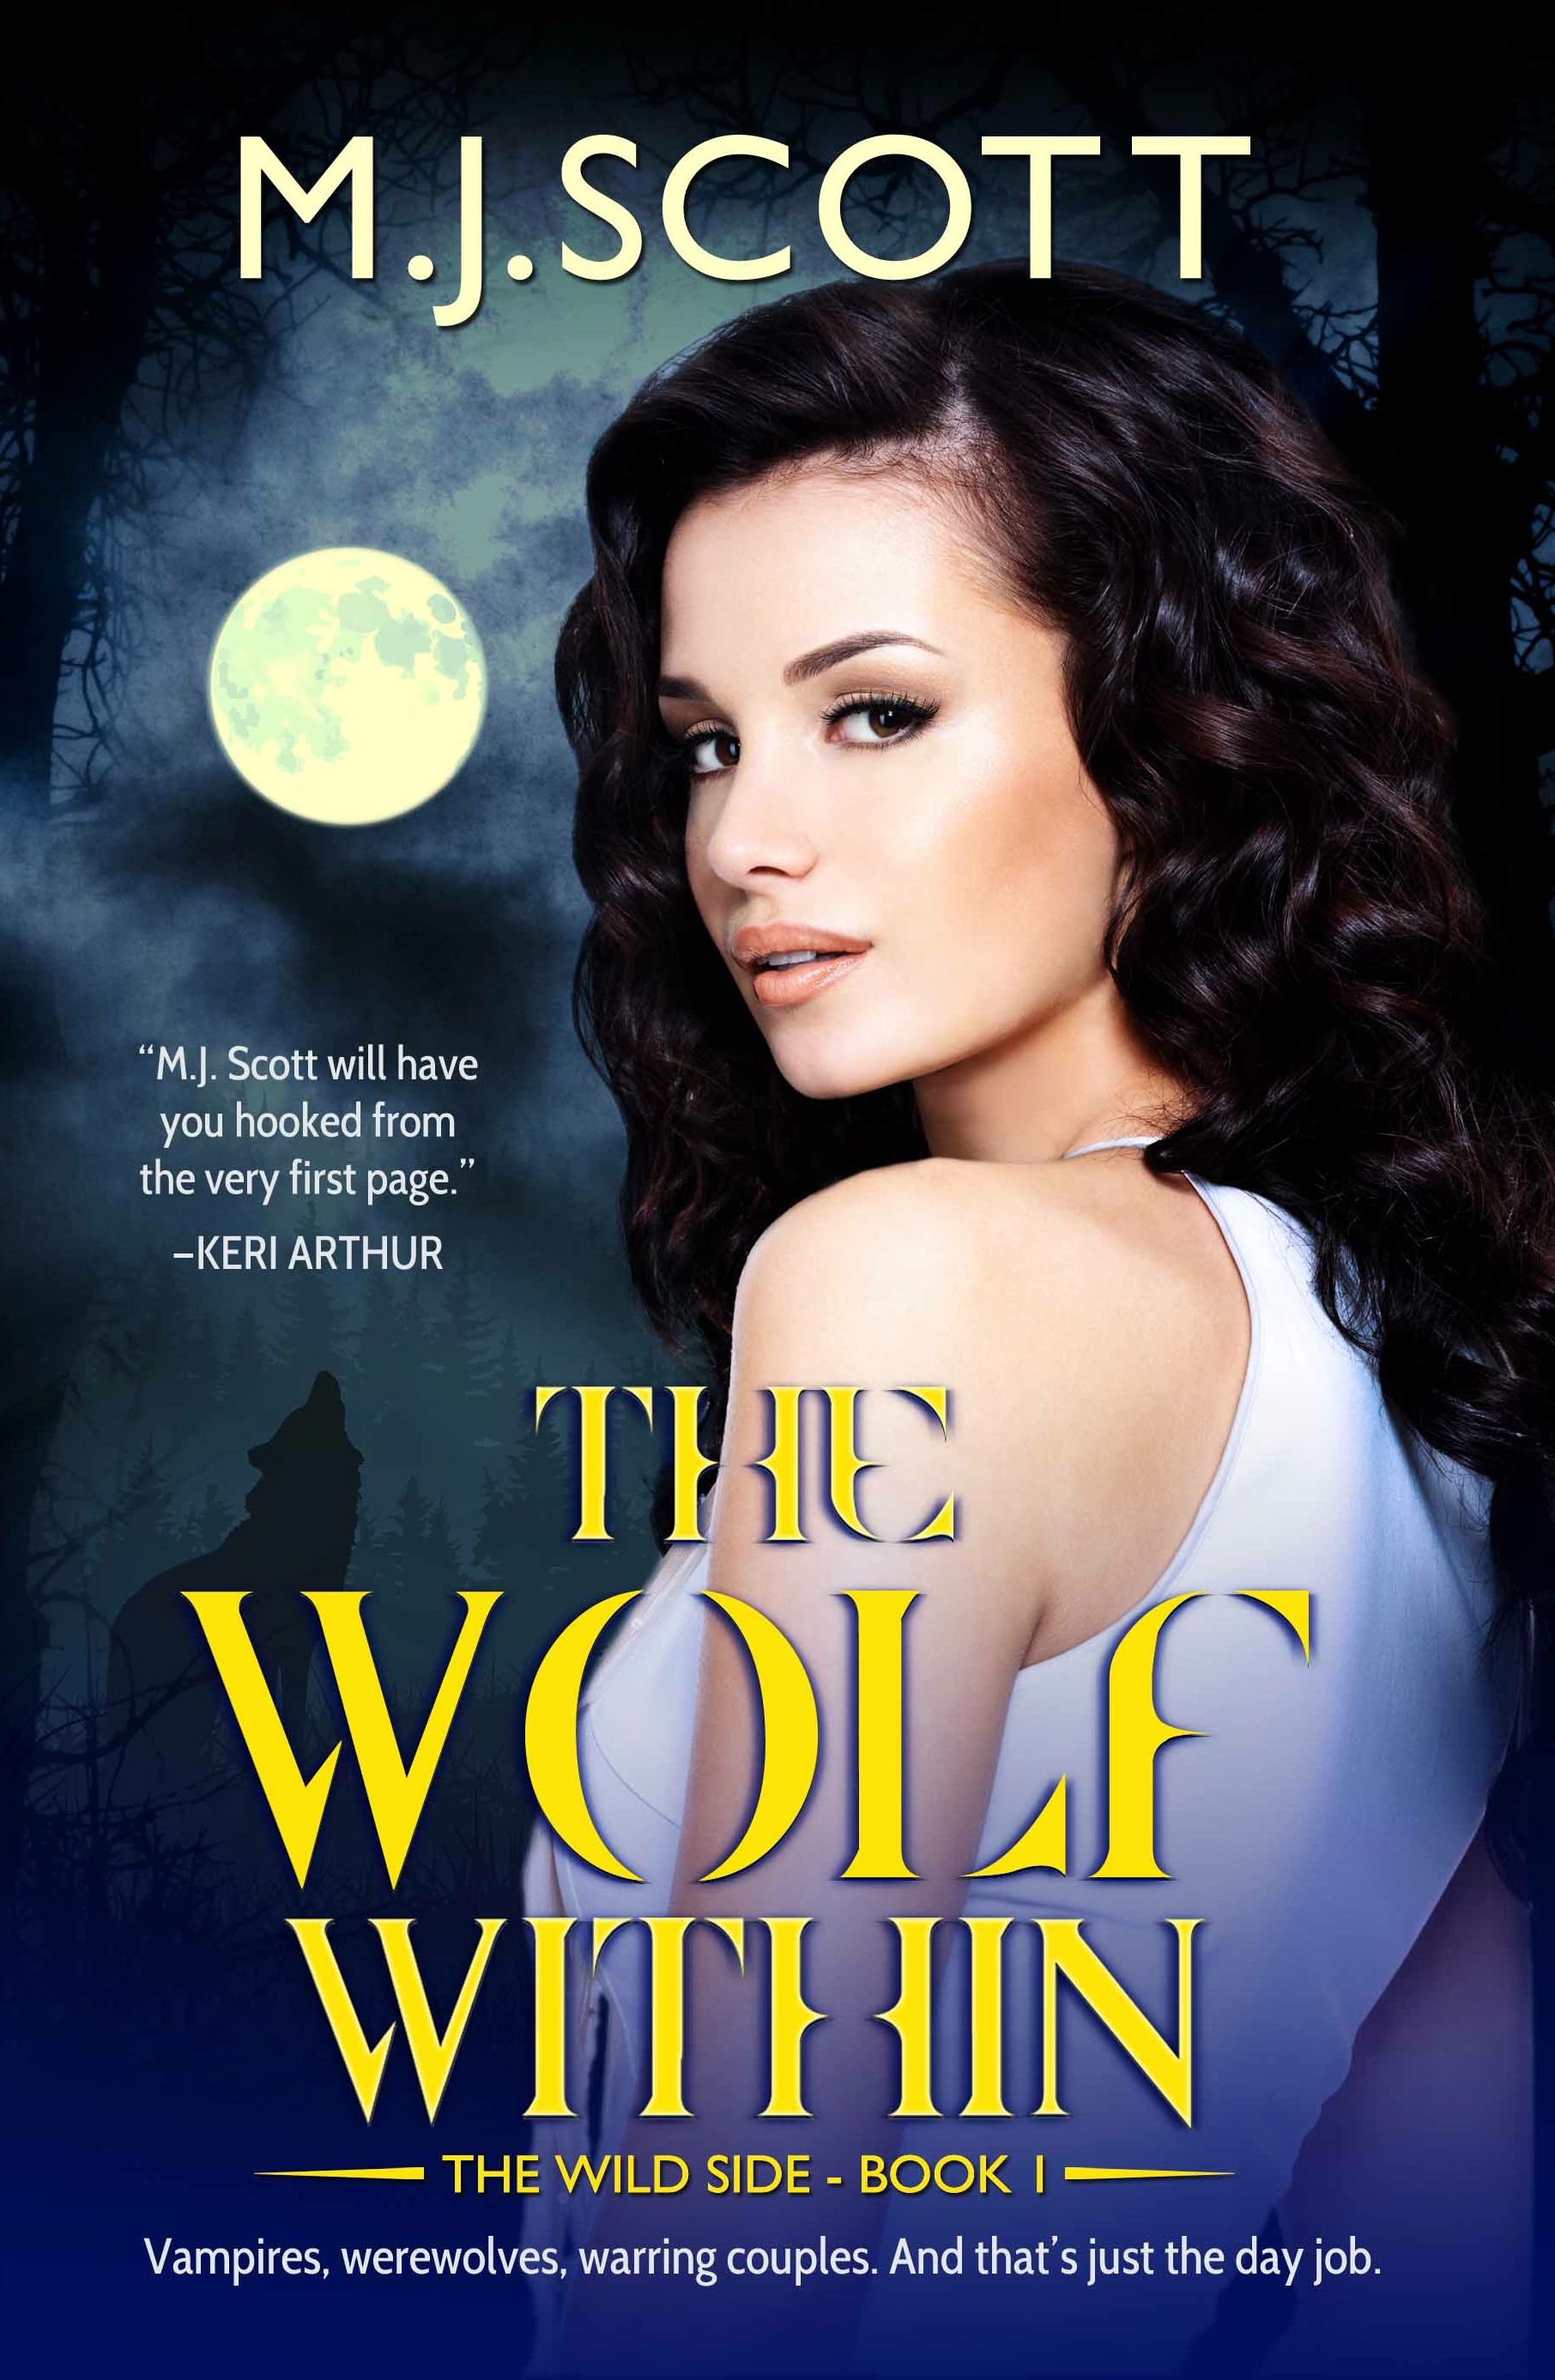 The Wolf Within on sale